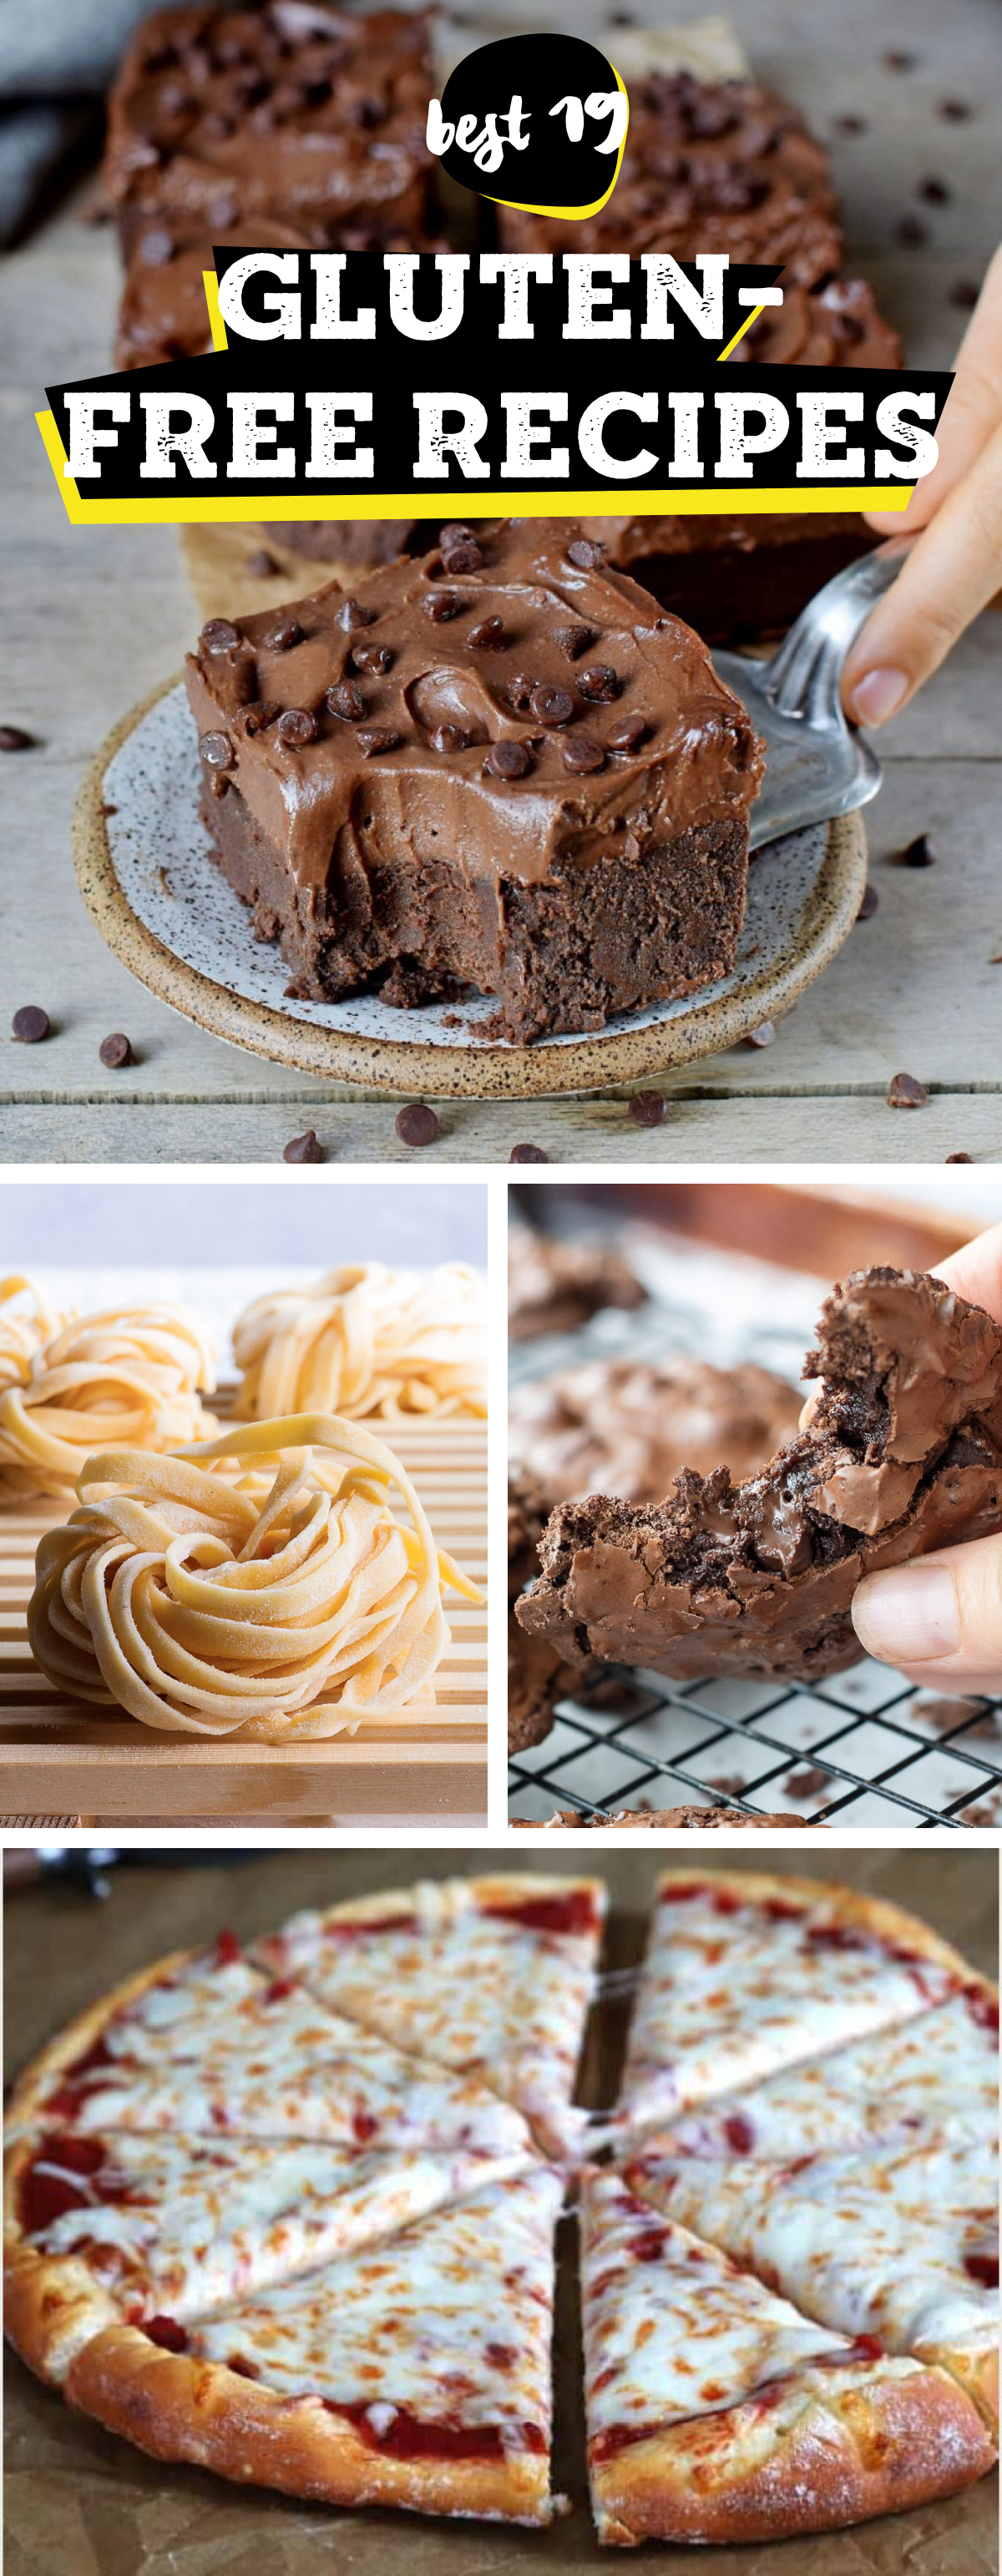 19 Heath-Packed Gluten-Free Recipes You'll Love to Make!